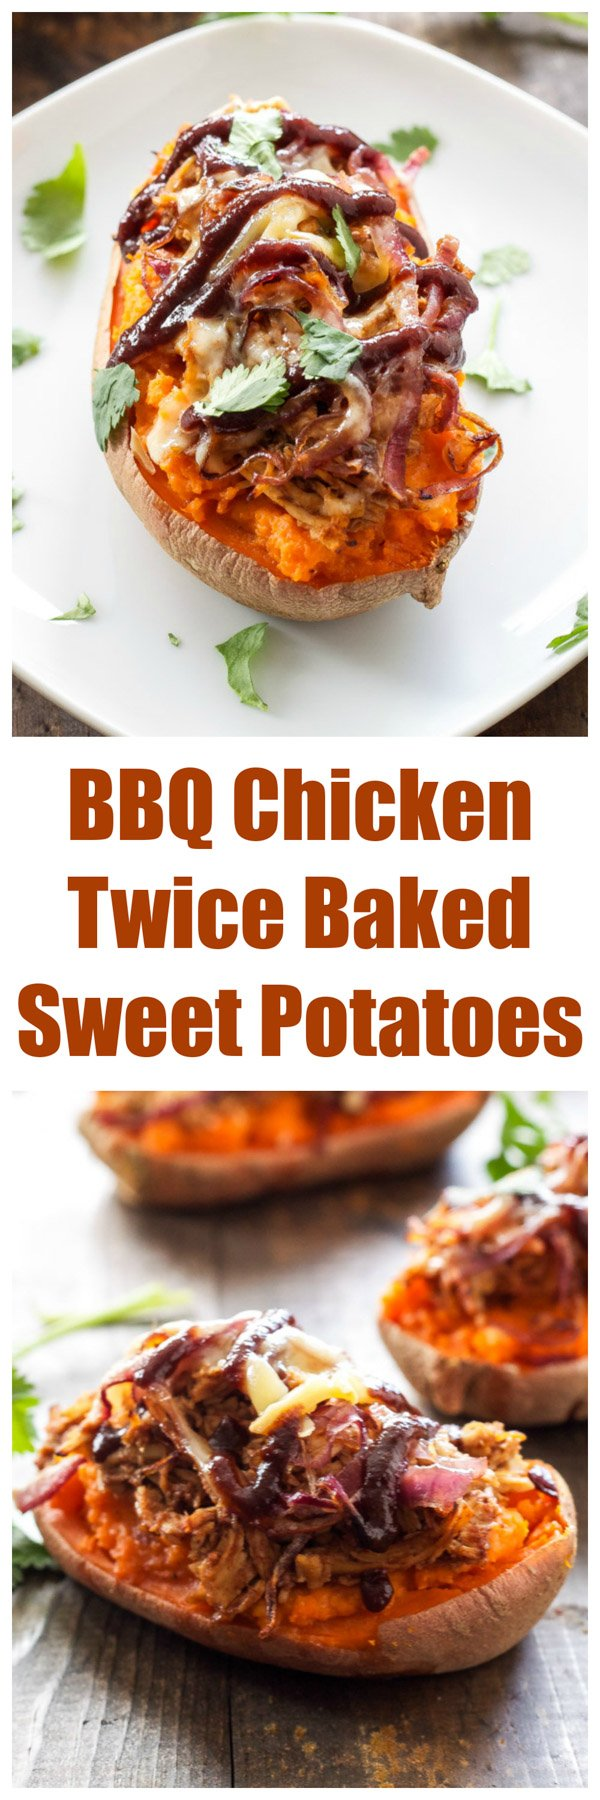 BBQ Chicken Twice Baked Sweet Potatoes | 5 ingredient twice baked sweet potatoes stuffed with BBQ chicken and smoked gouda! | www.reciperunner.com